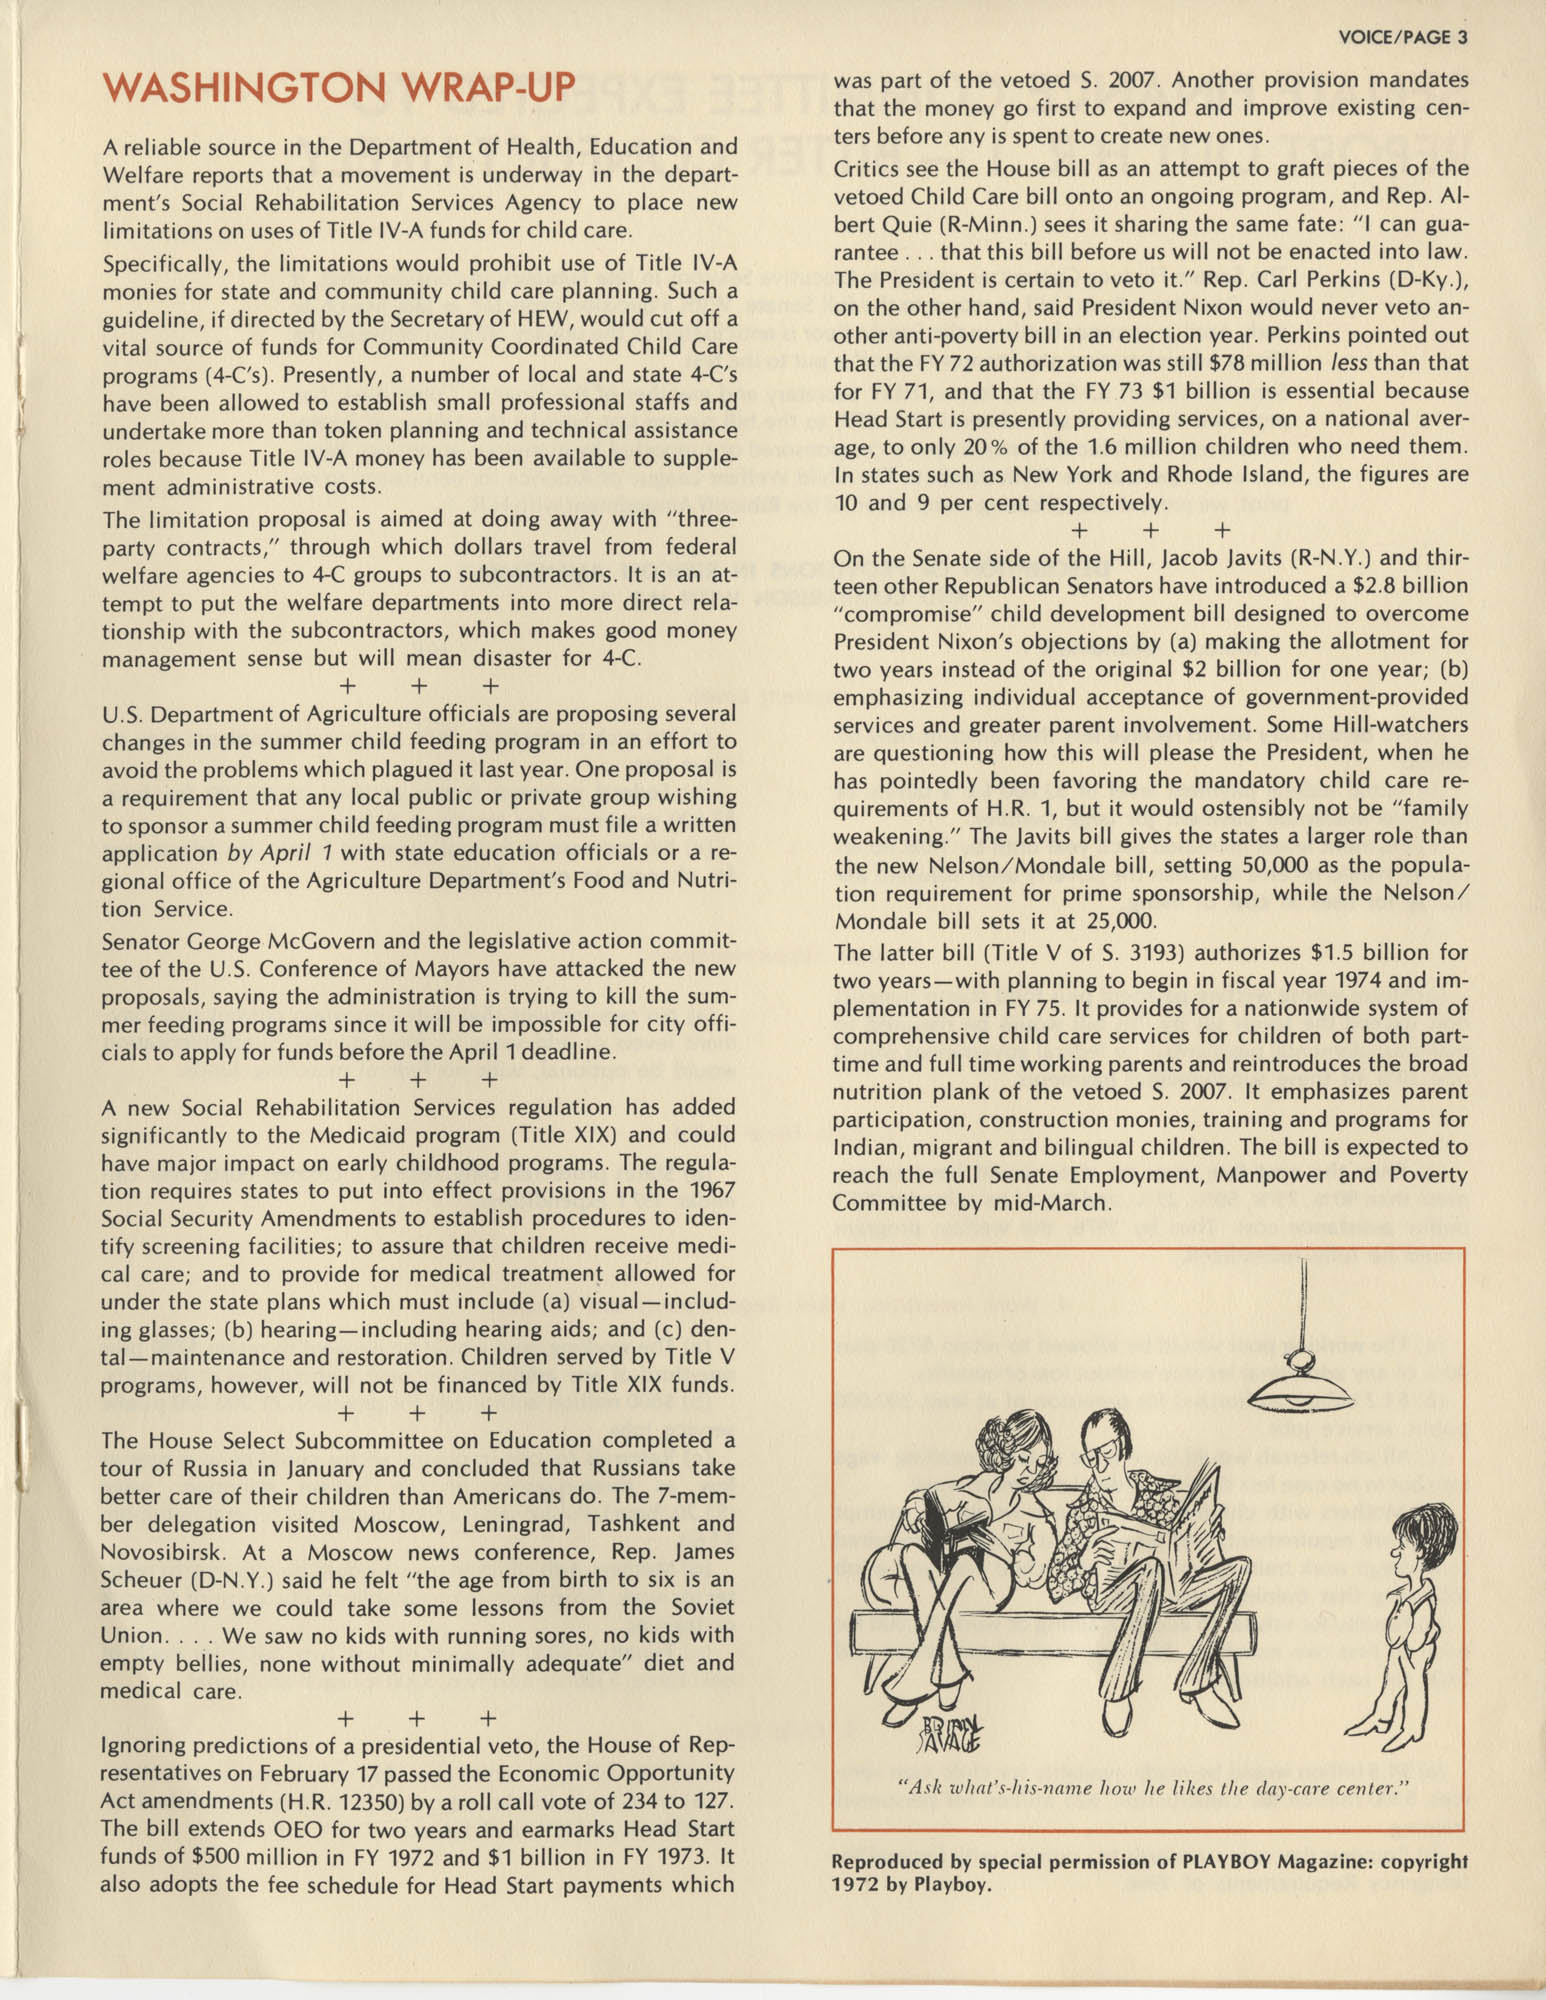 Voice For Children, Volume 5, Number 3, Page 3